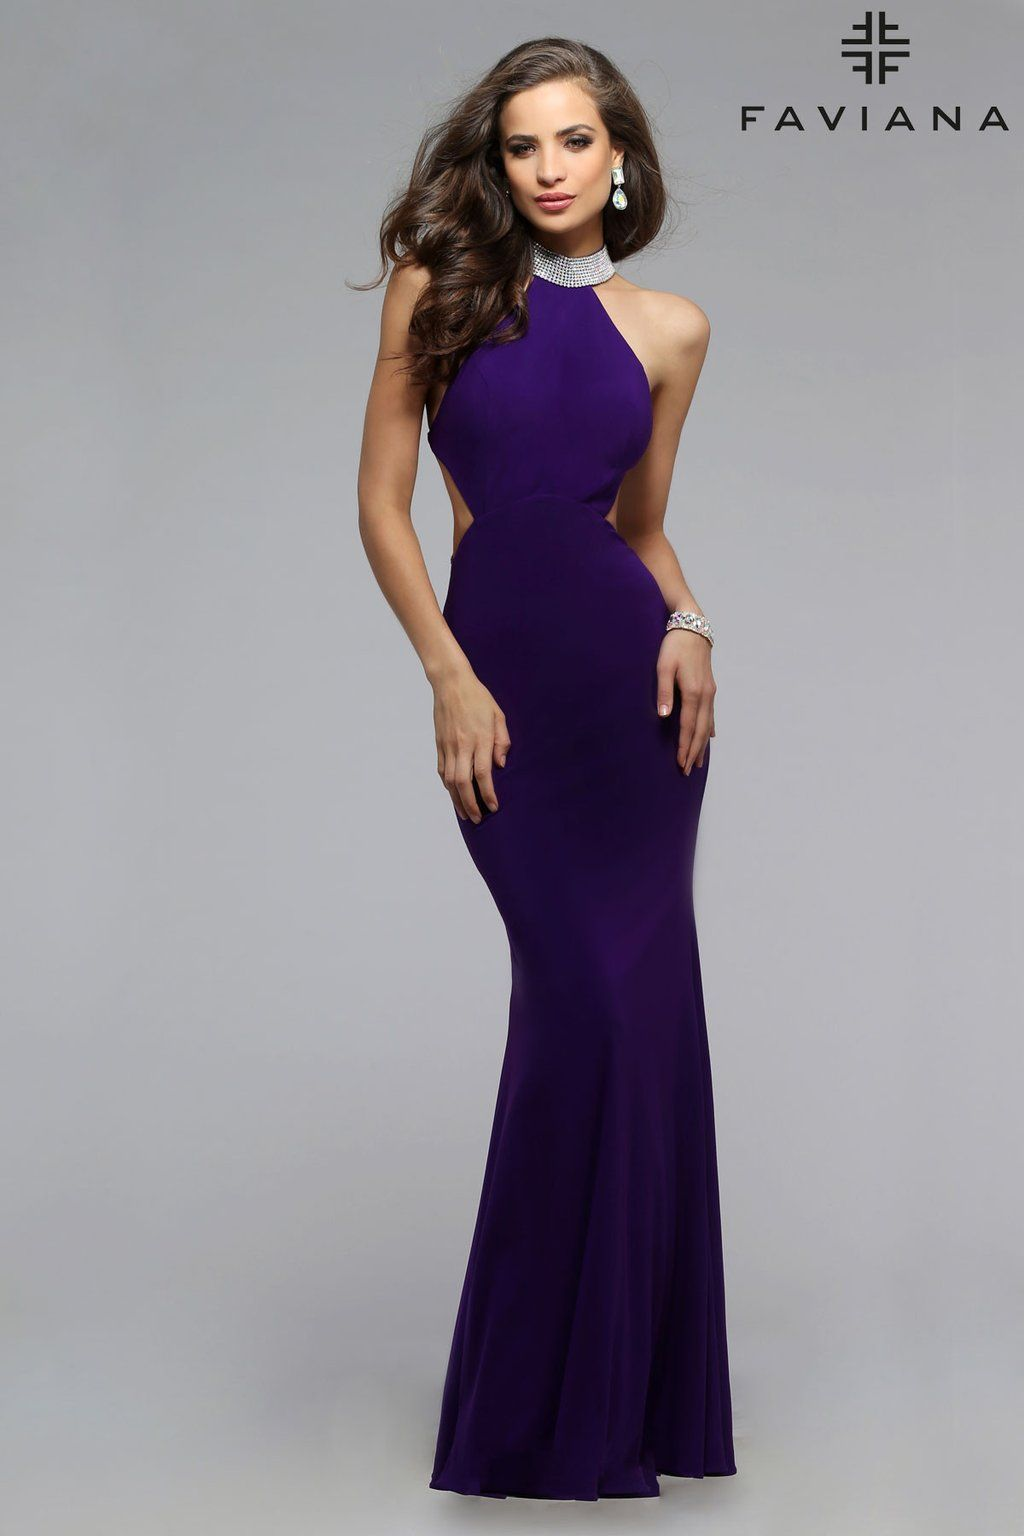 Faviana faviana prom dresses pinterest red carpet